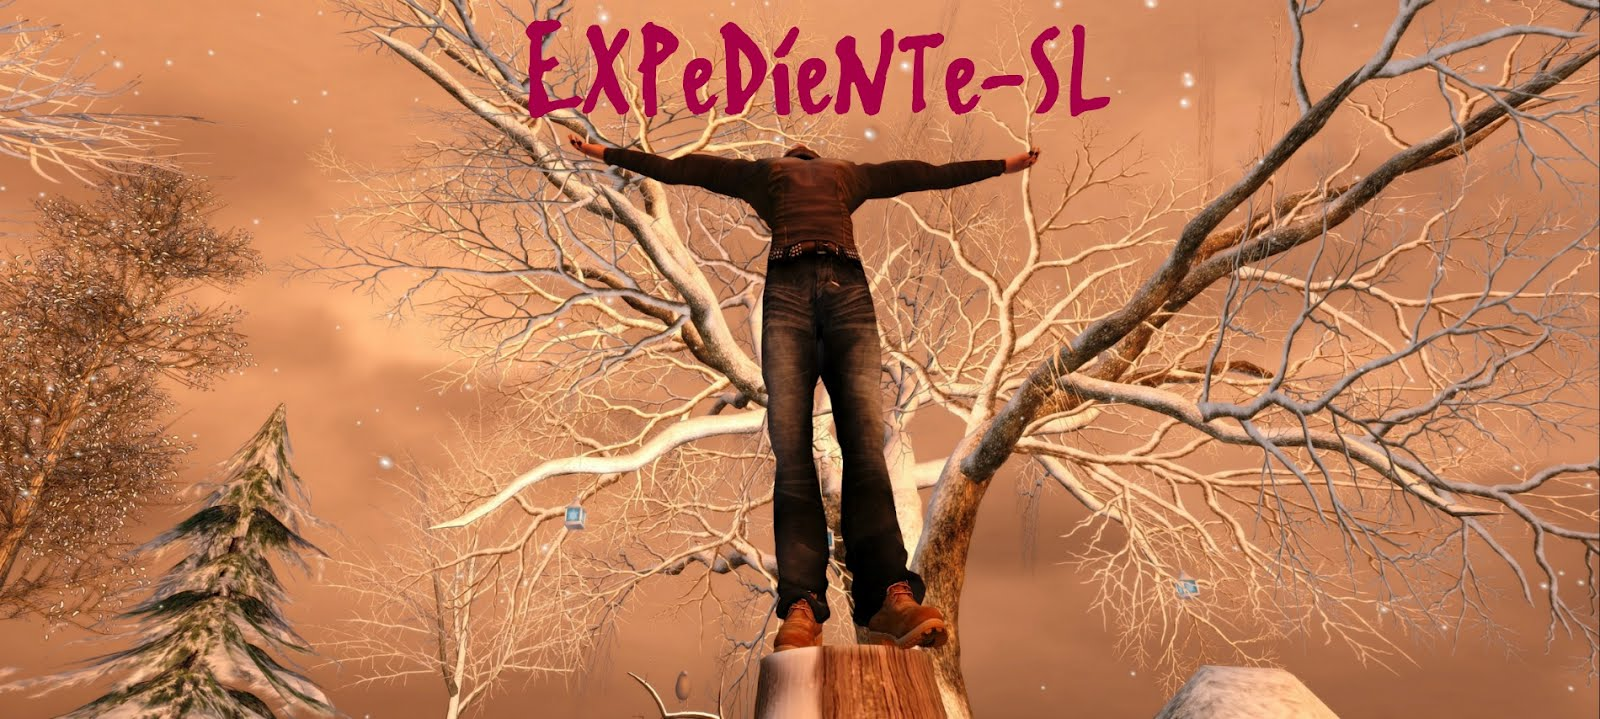 EXPeDieNTe-SL